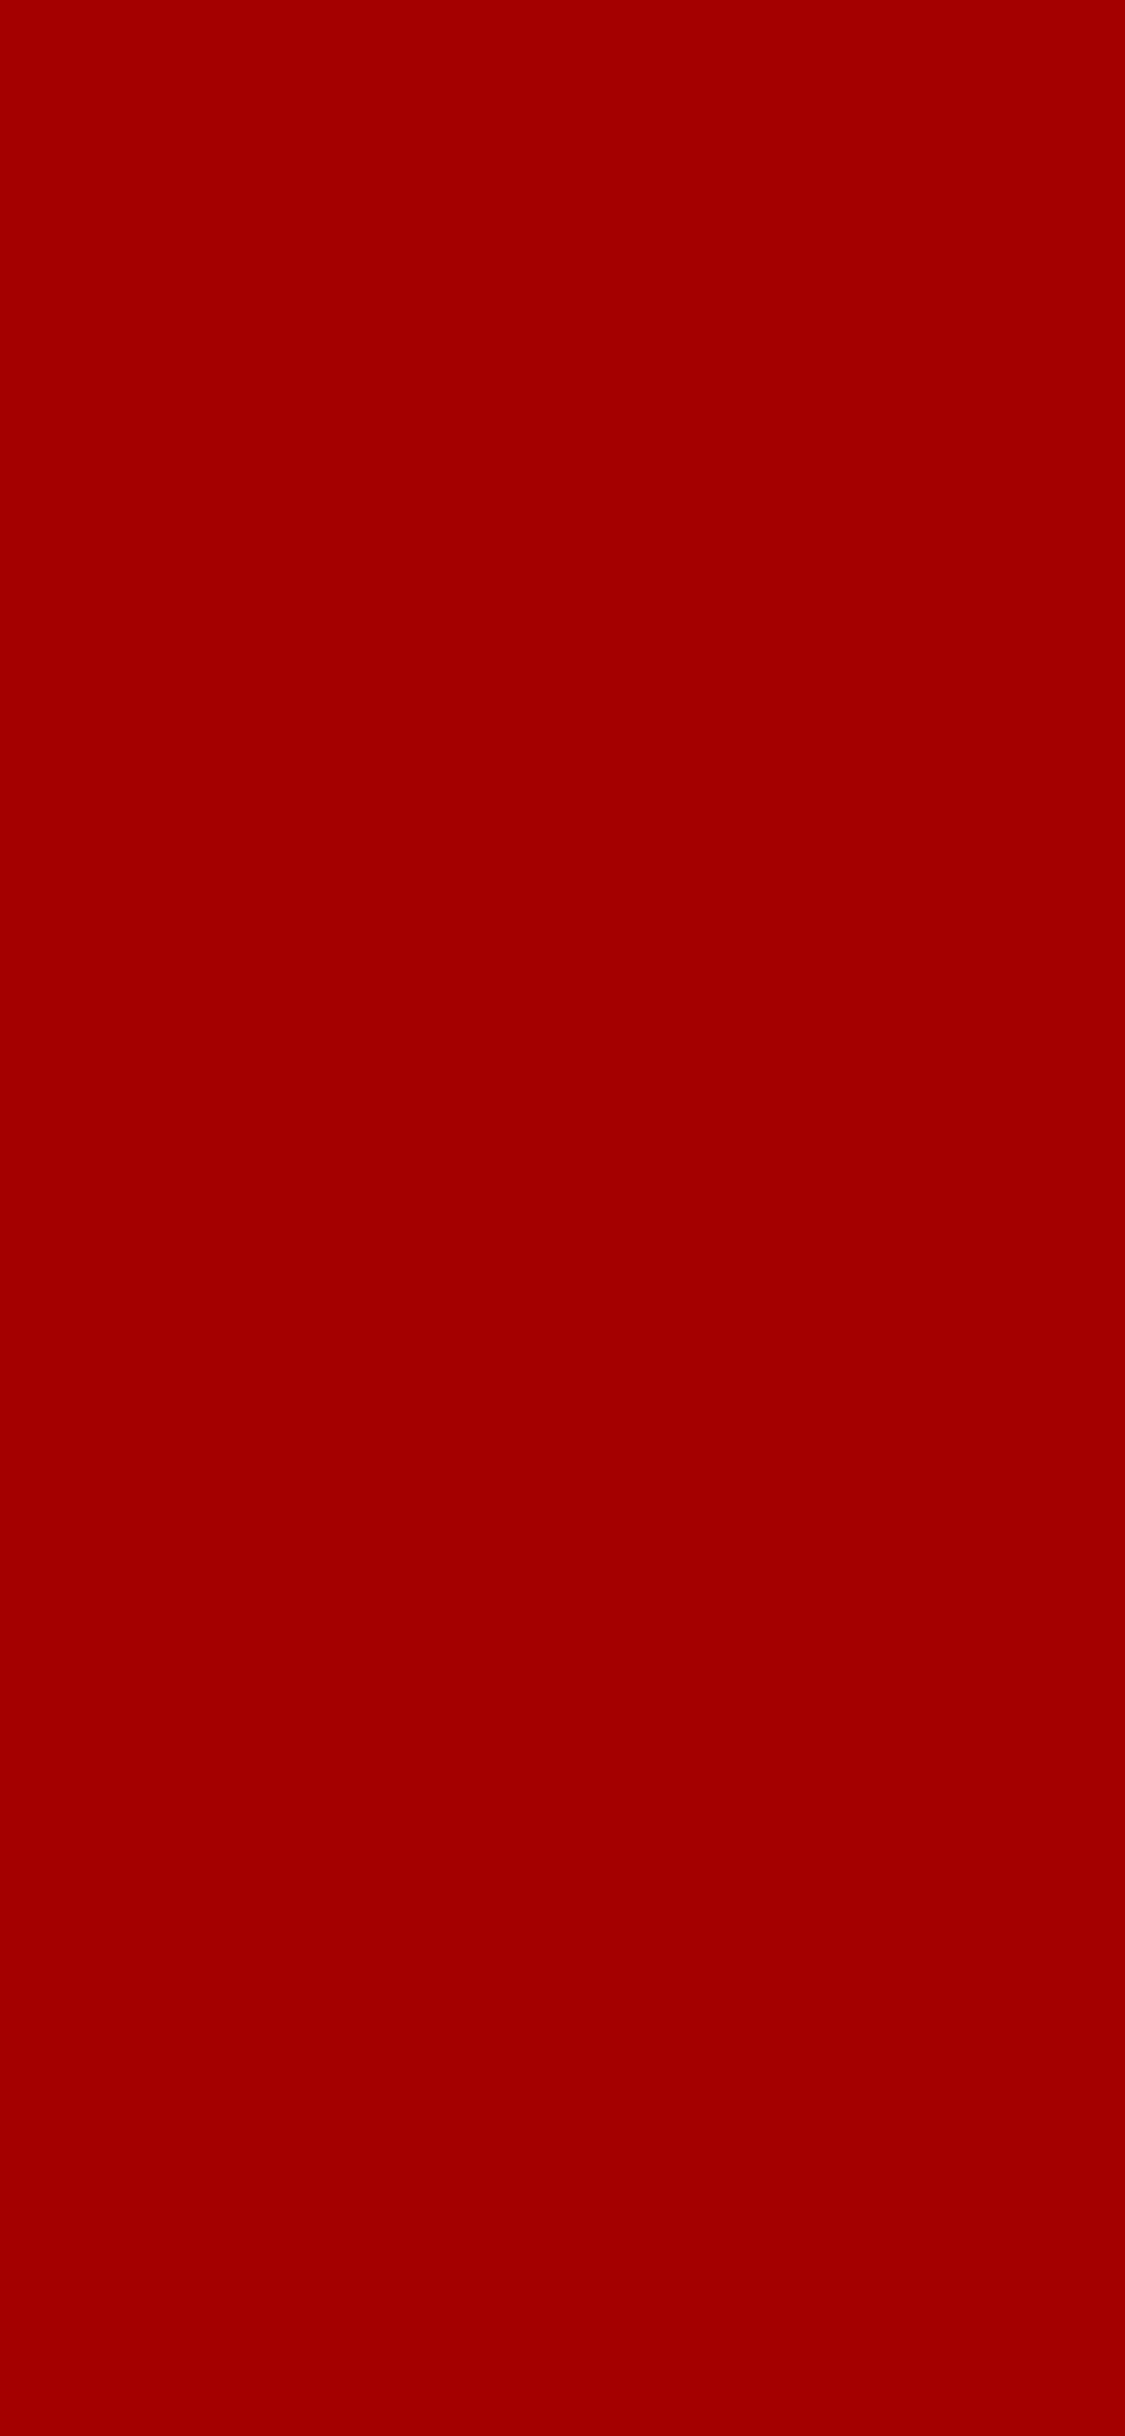 1125x2436 Dark Candy Apple Red Solid Color Background